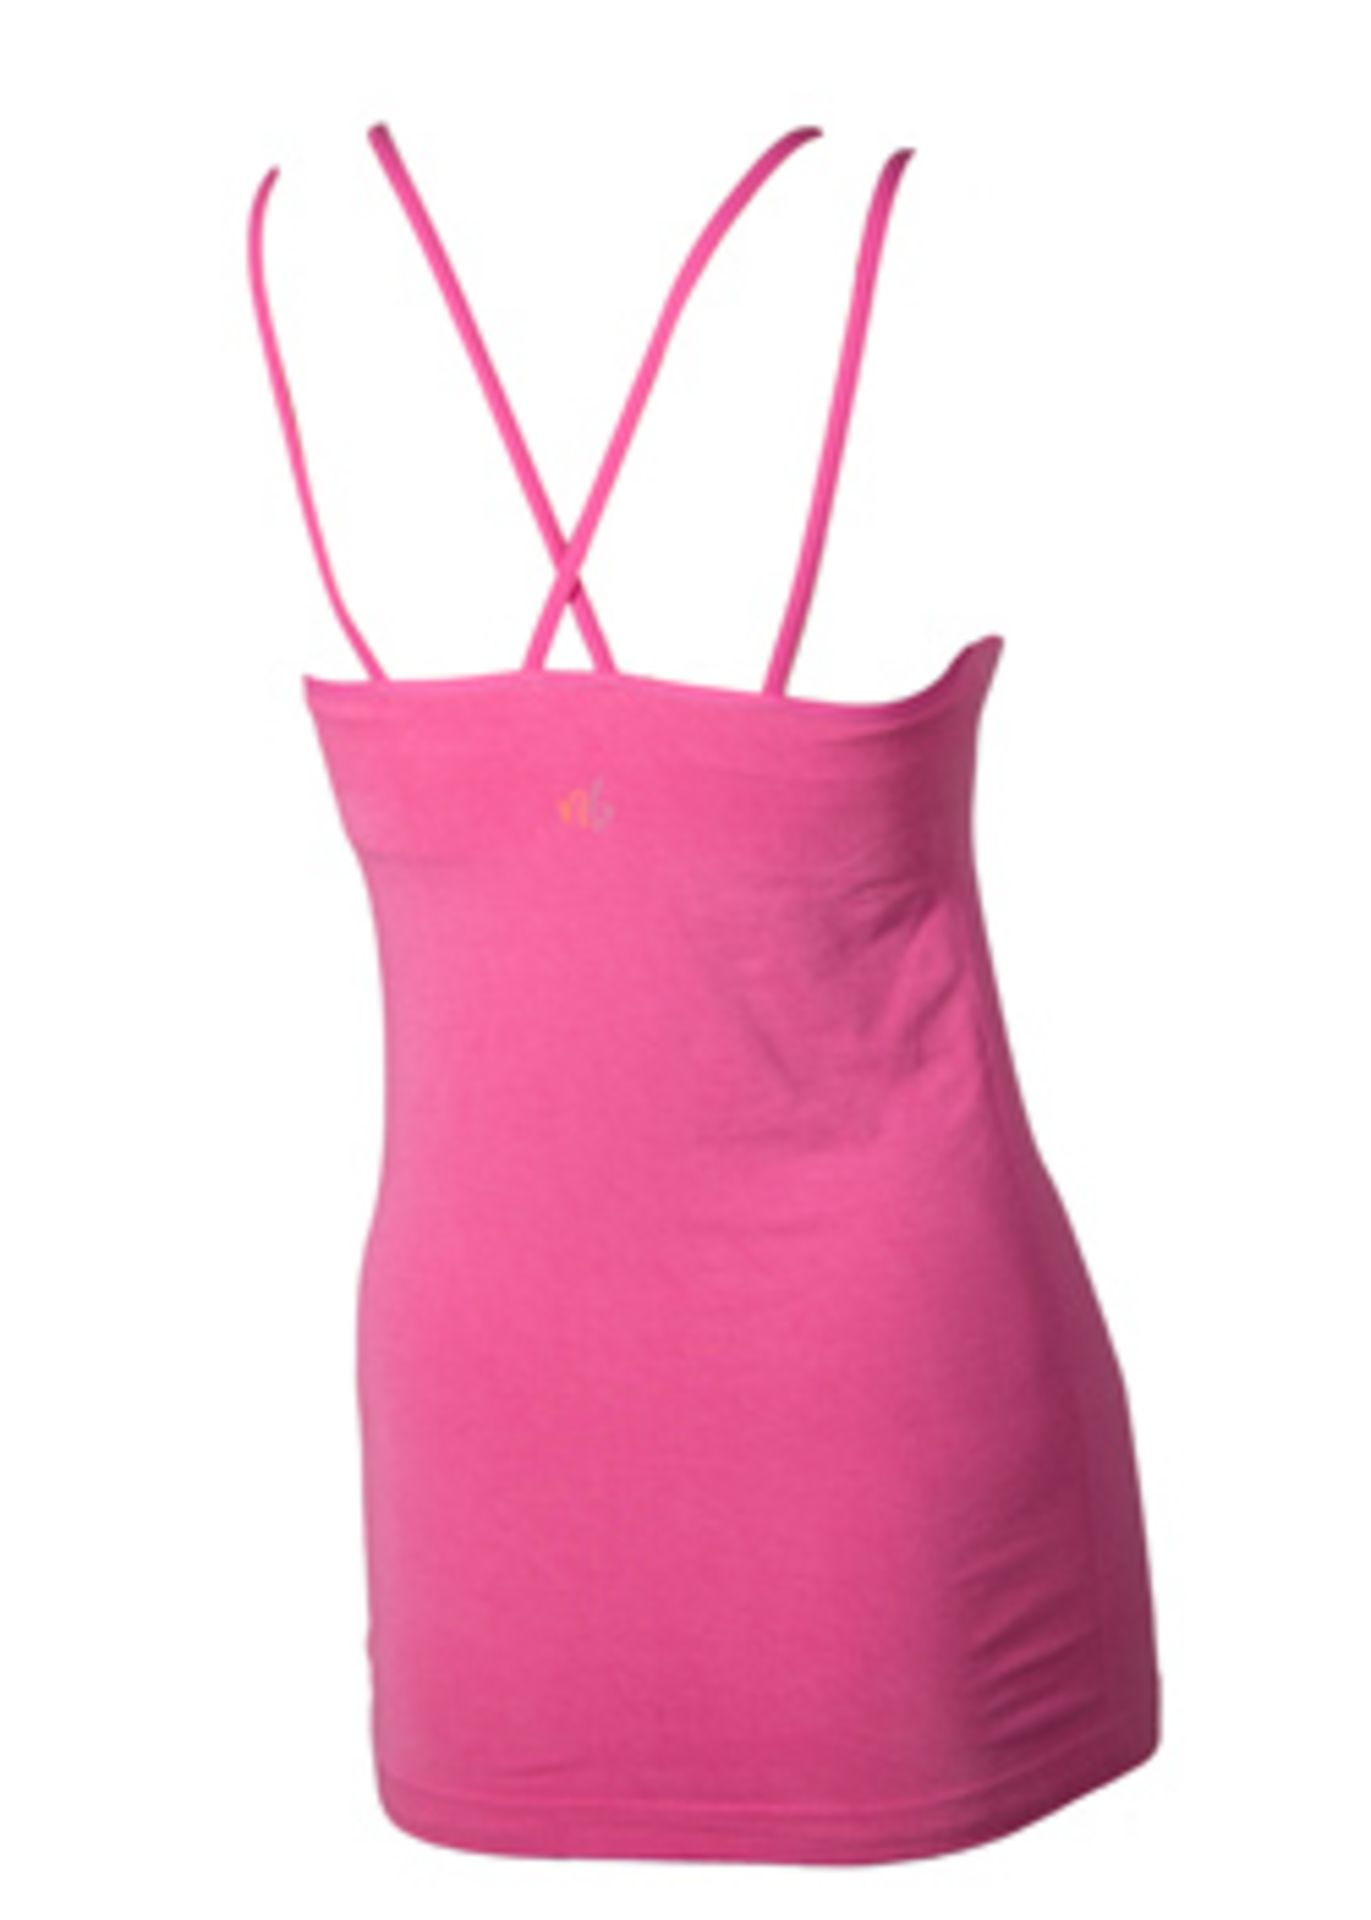 3 x Bamboo Yoga Flow Tops w/ Padded Bra   XS - Image 4 of 4